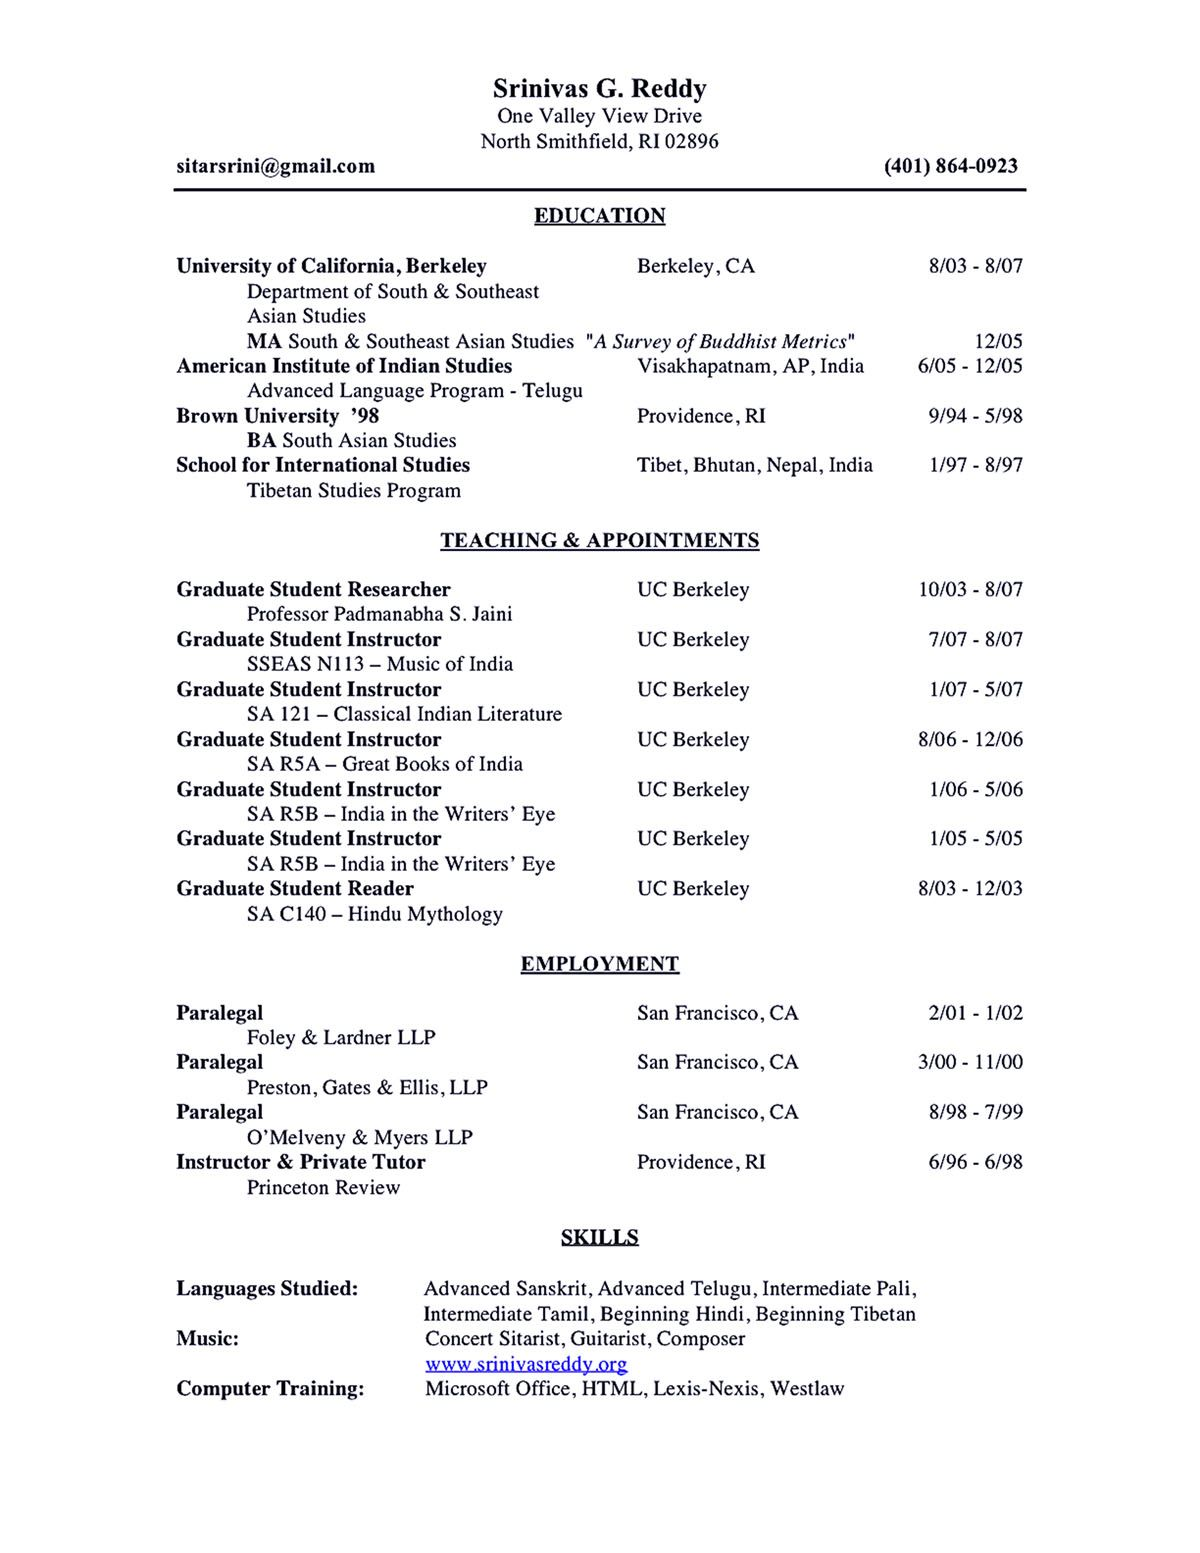 Academic resume sample shows you how to make academic